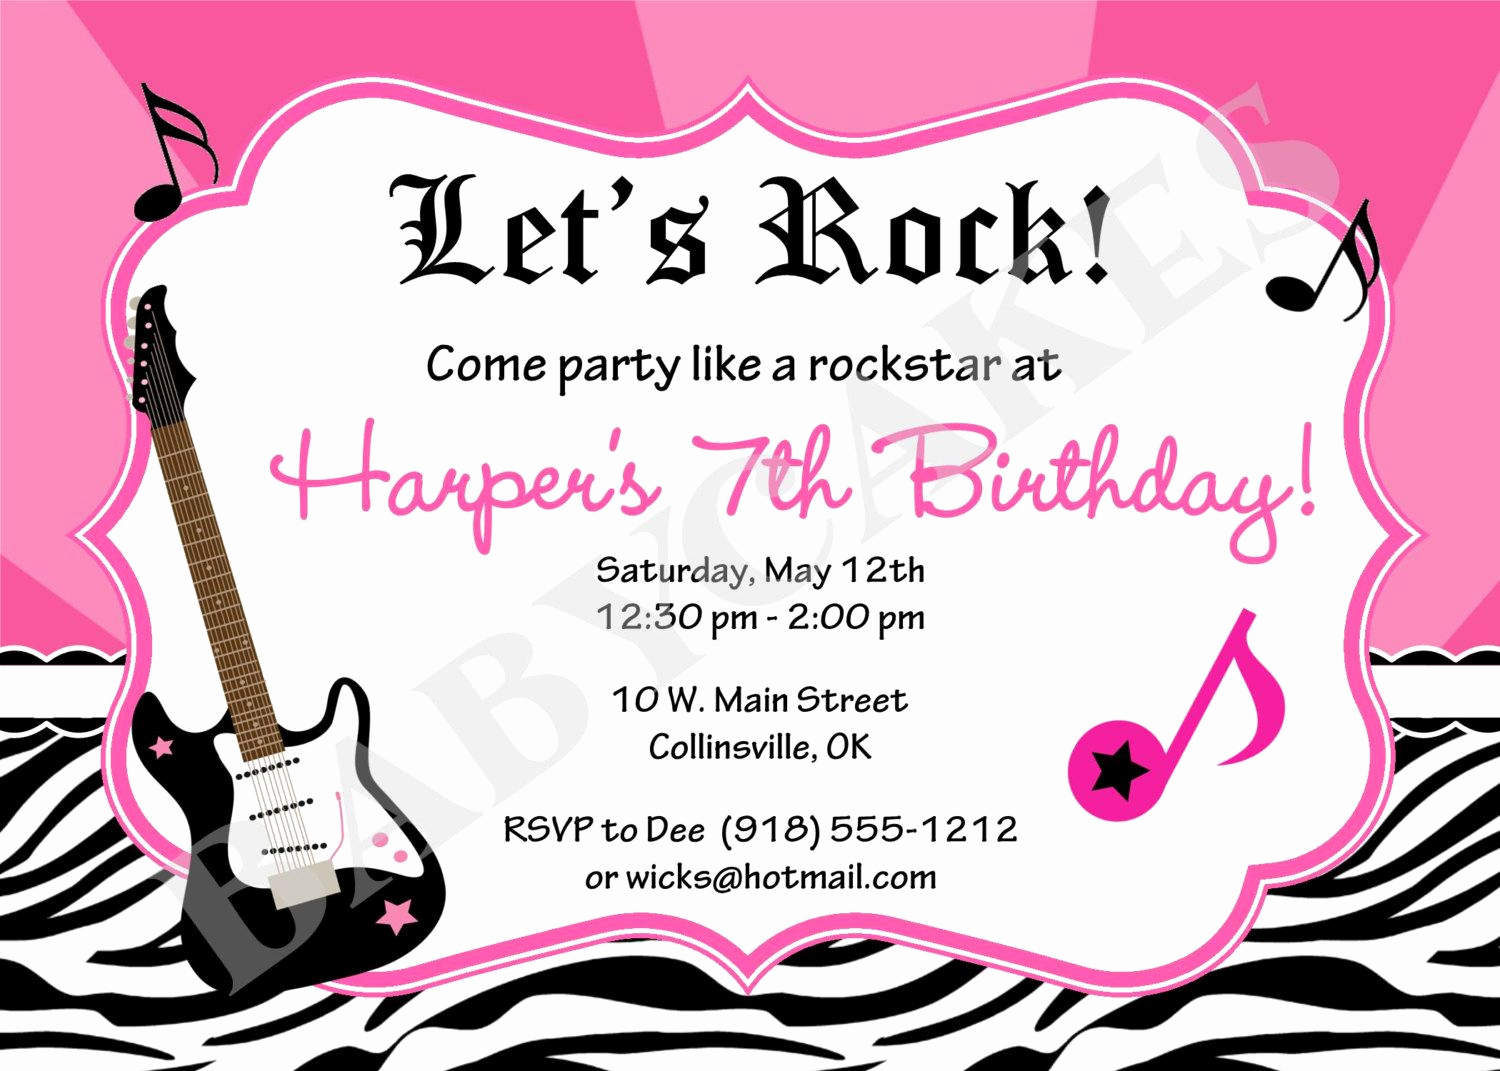 Karaoke Party Invitation Wording Unique Rockstar Birthday Party Invitation Zebra Print by